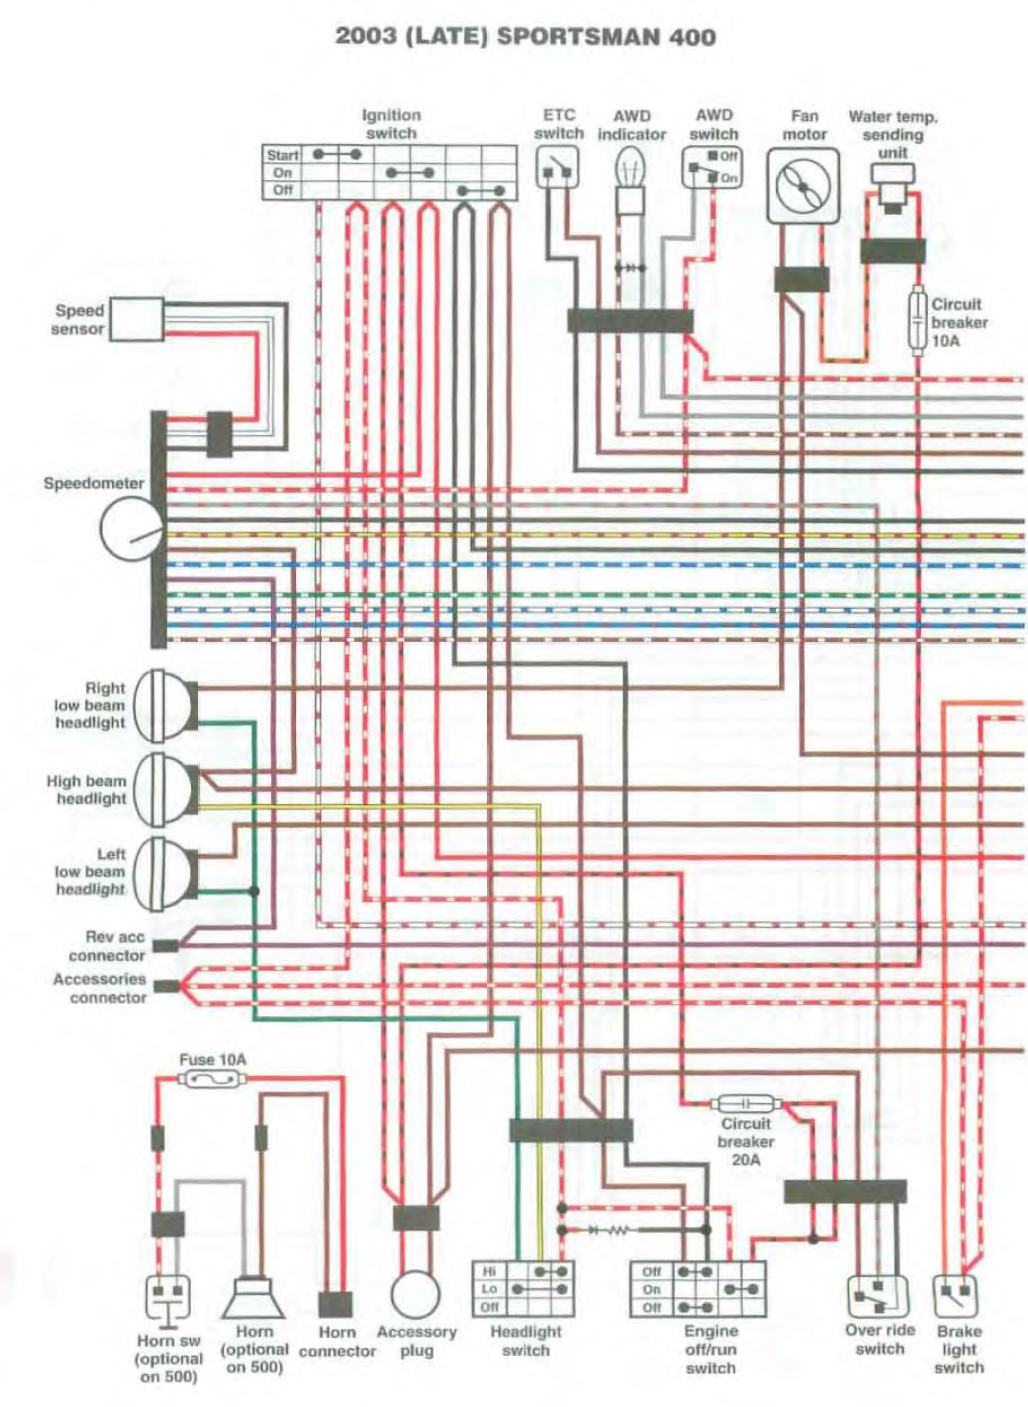 2004 Polaris Sportsman 500 Wiring Diagram from www.polarisatvforums.com